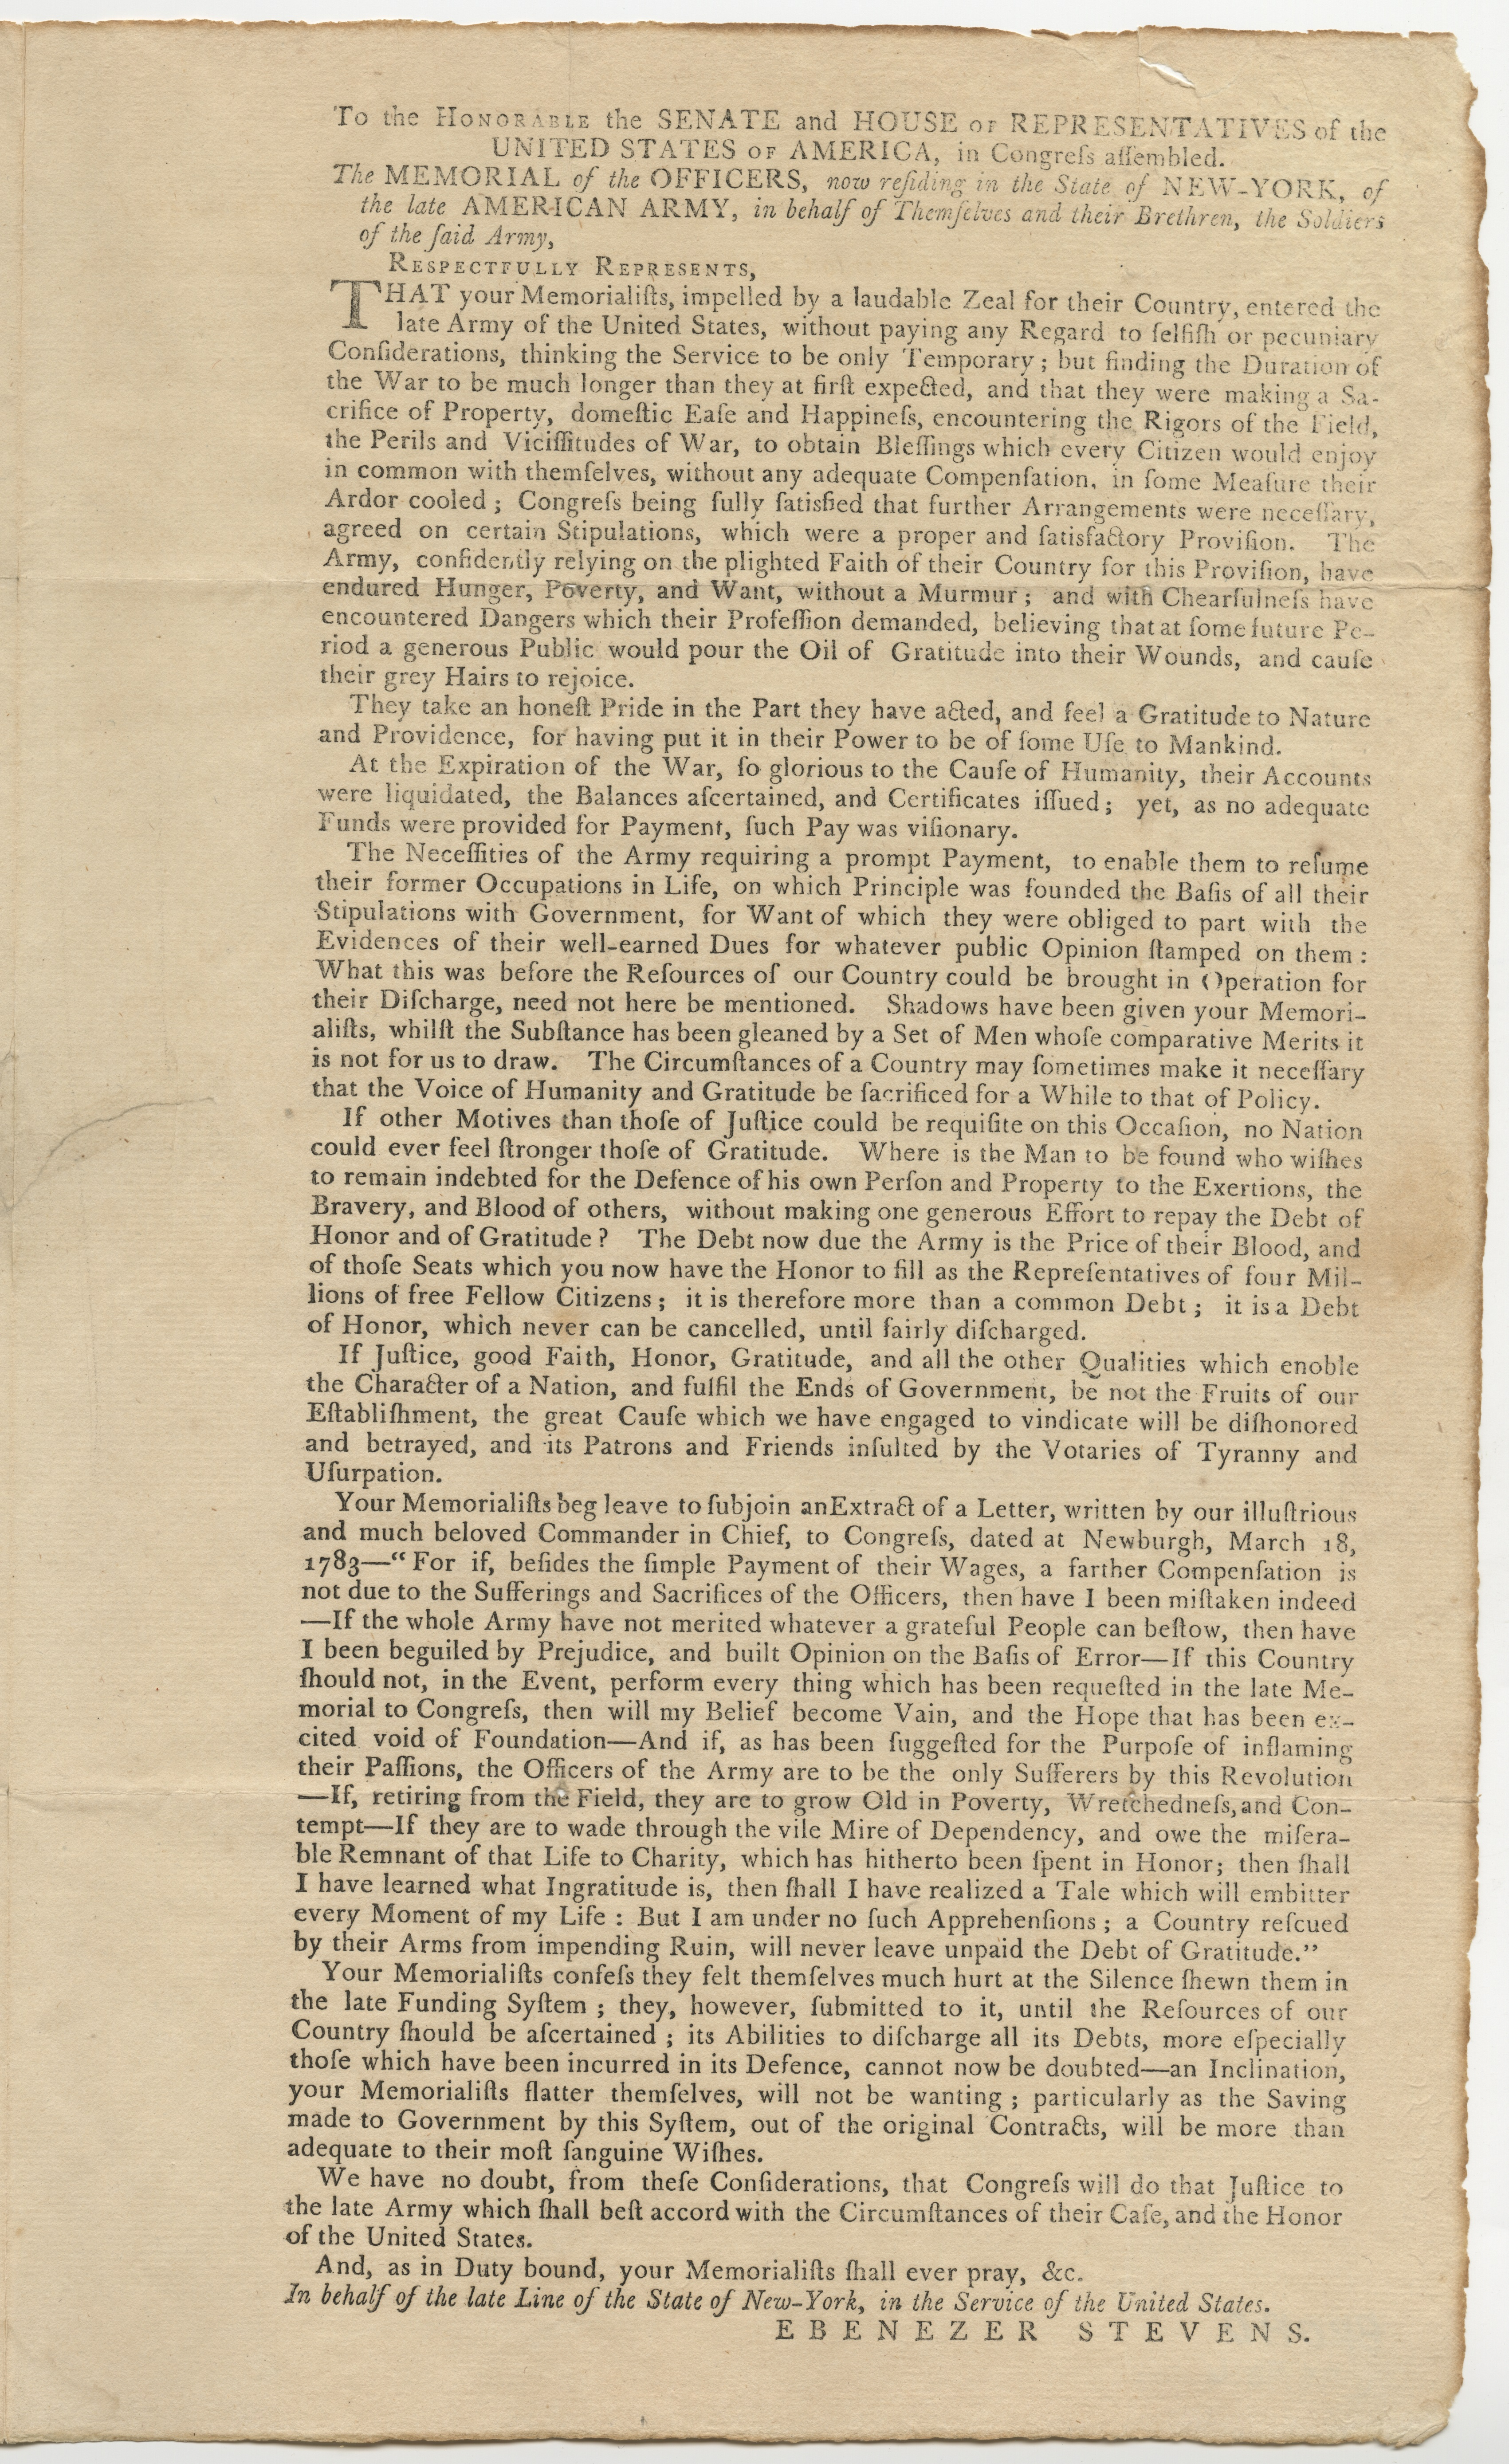 Memorial of New York officers on half pay, 1792